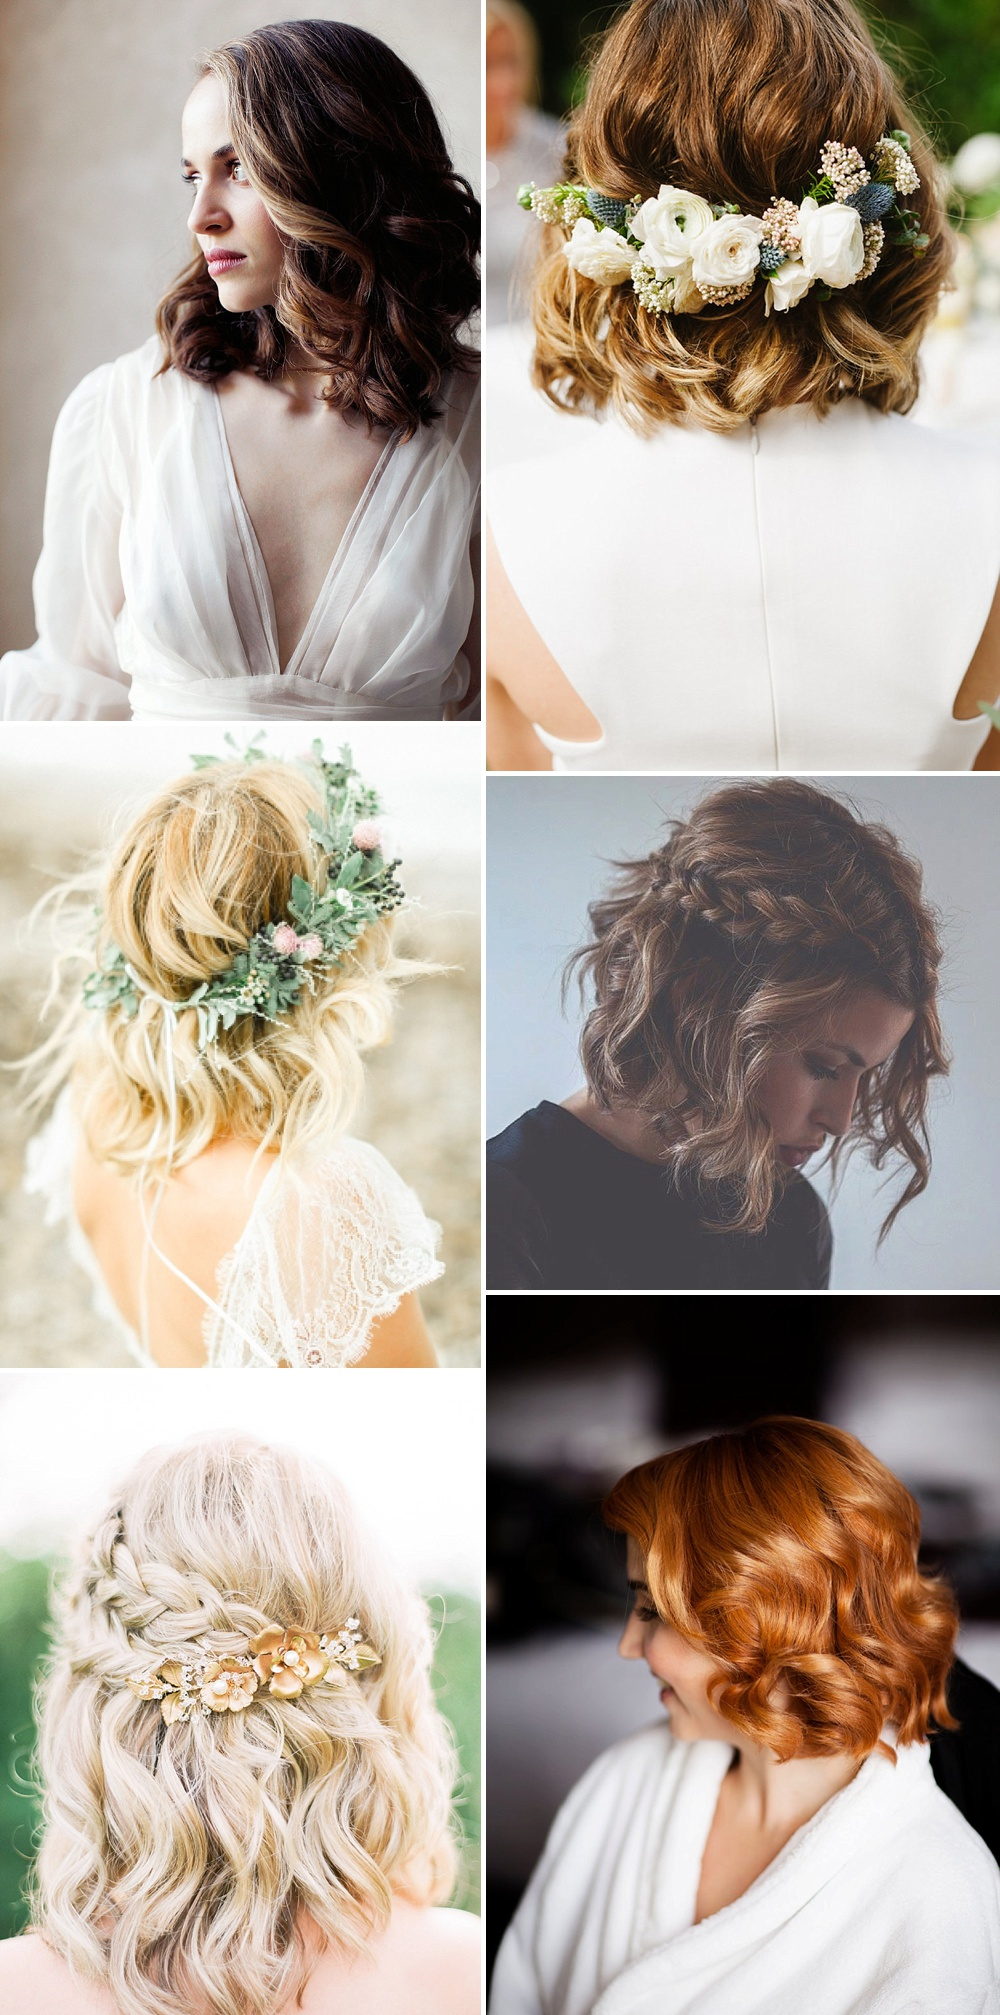 Wedding Hair Ideas For Stylish Brides Trends For 2017